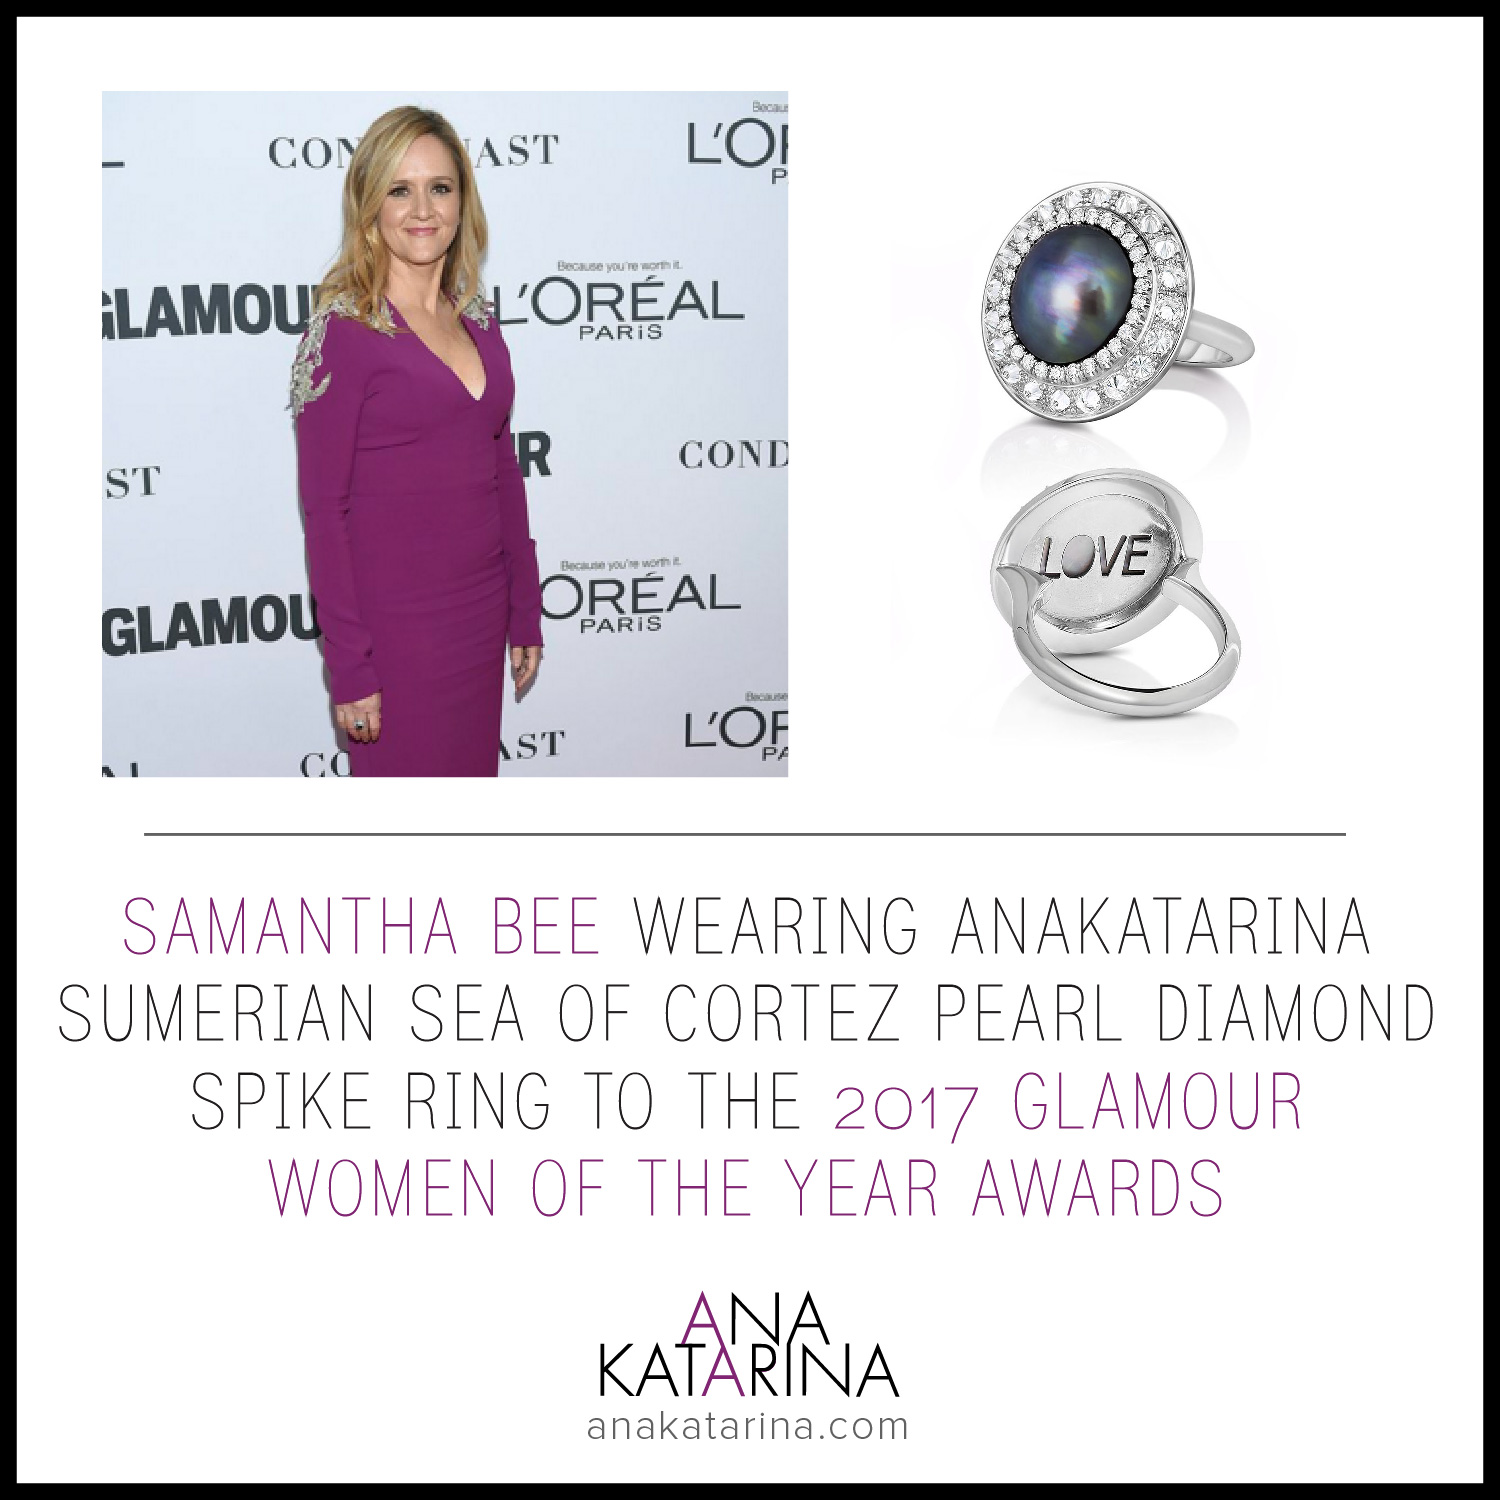 AK_samantha BEE_glamour awards-01.jpg